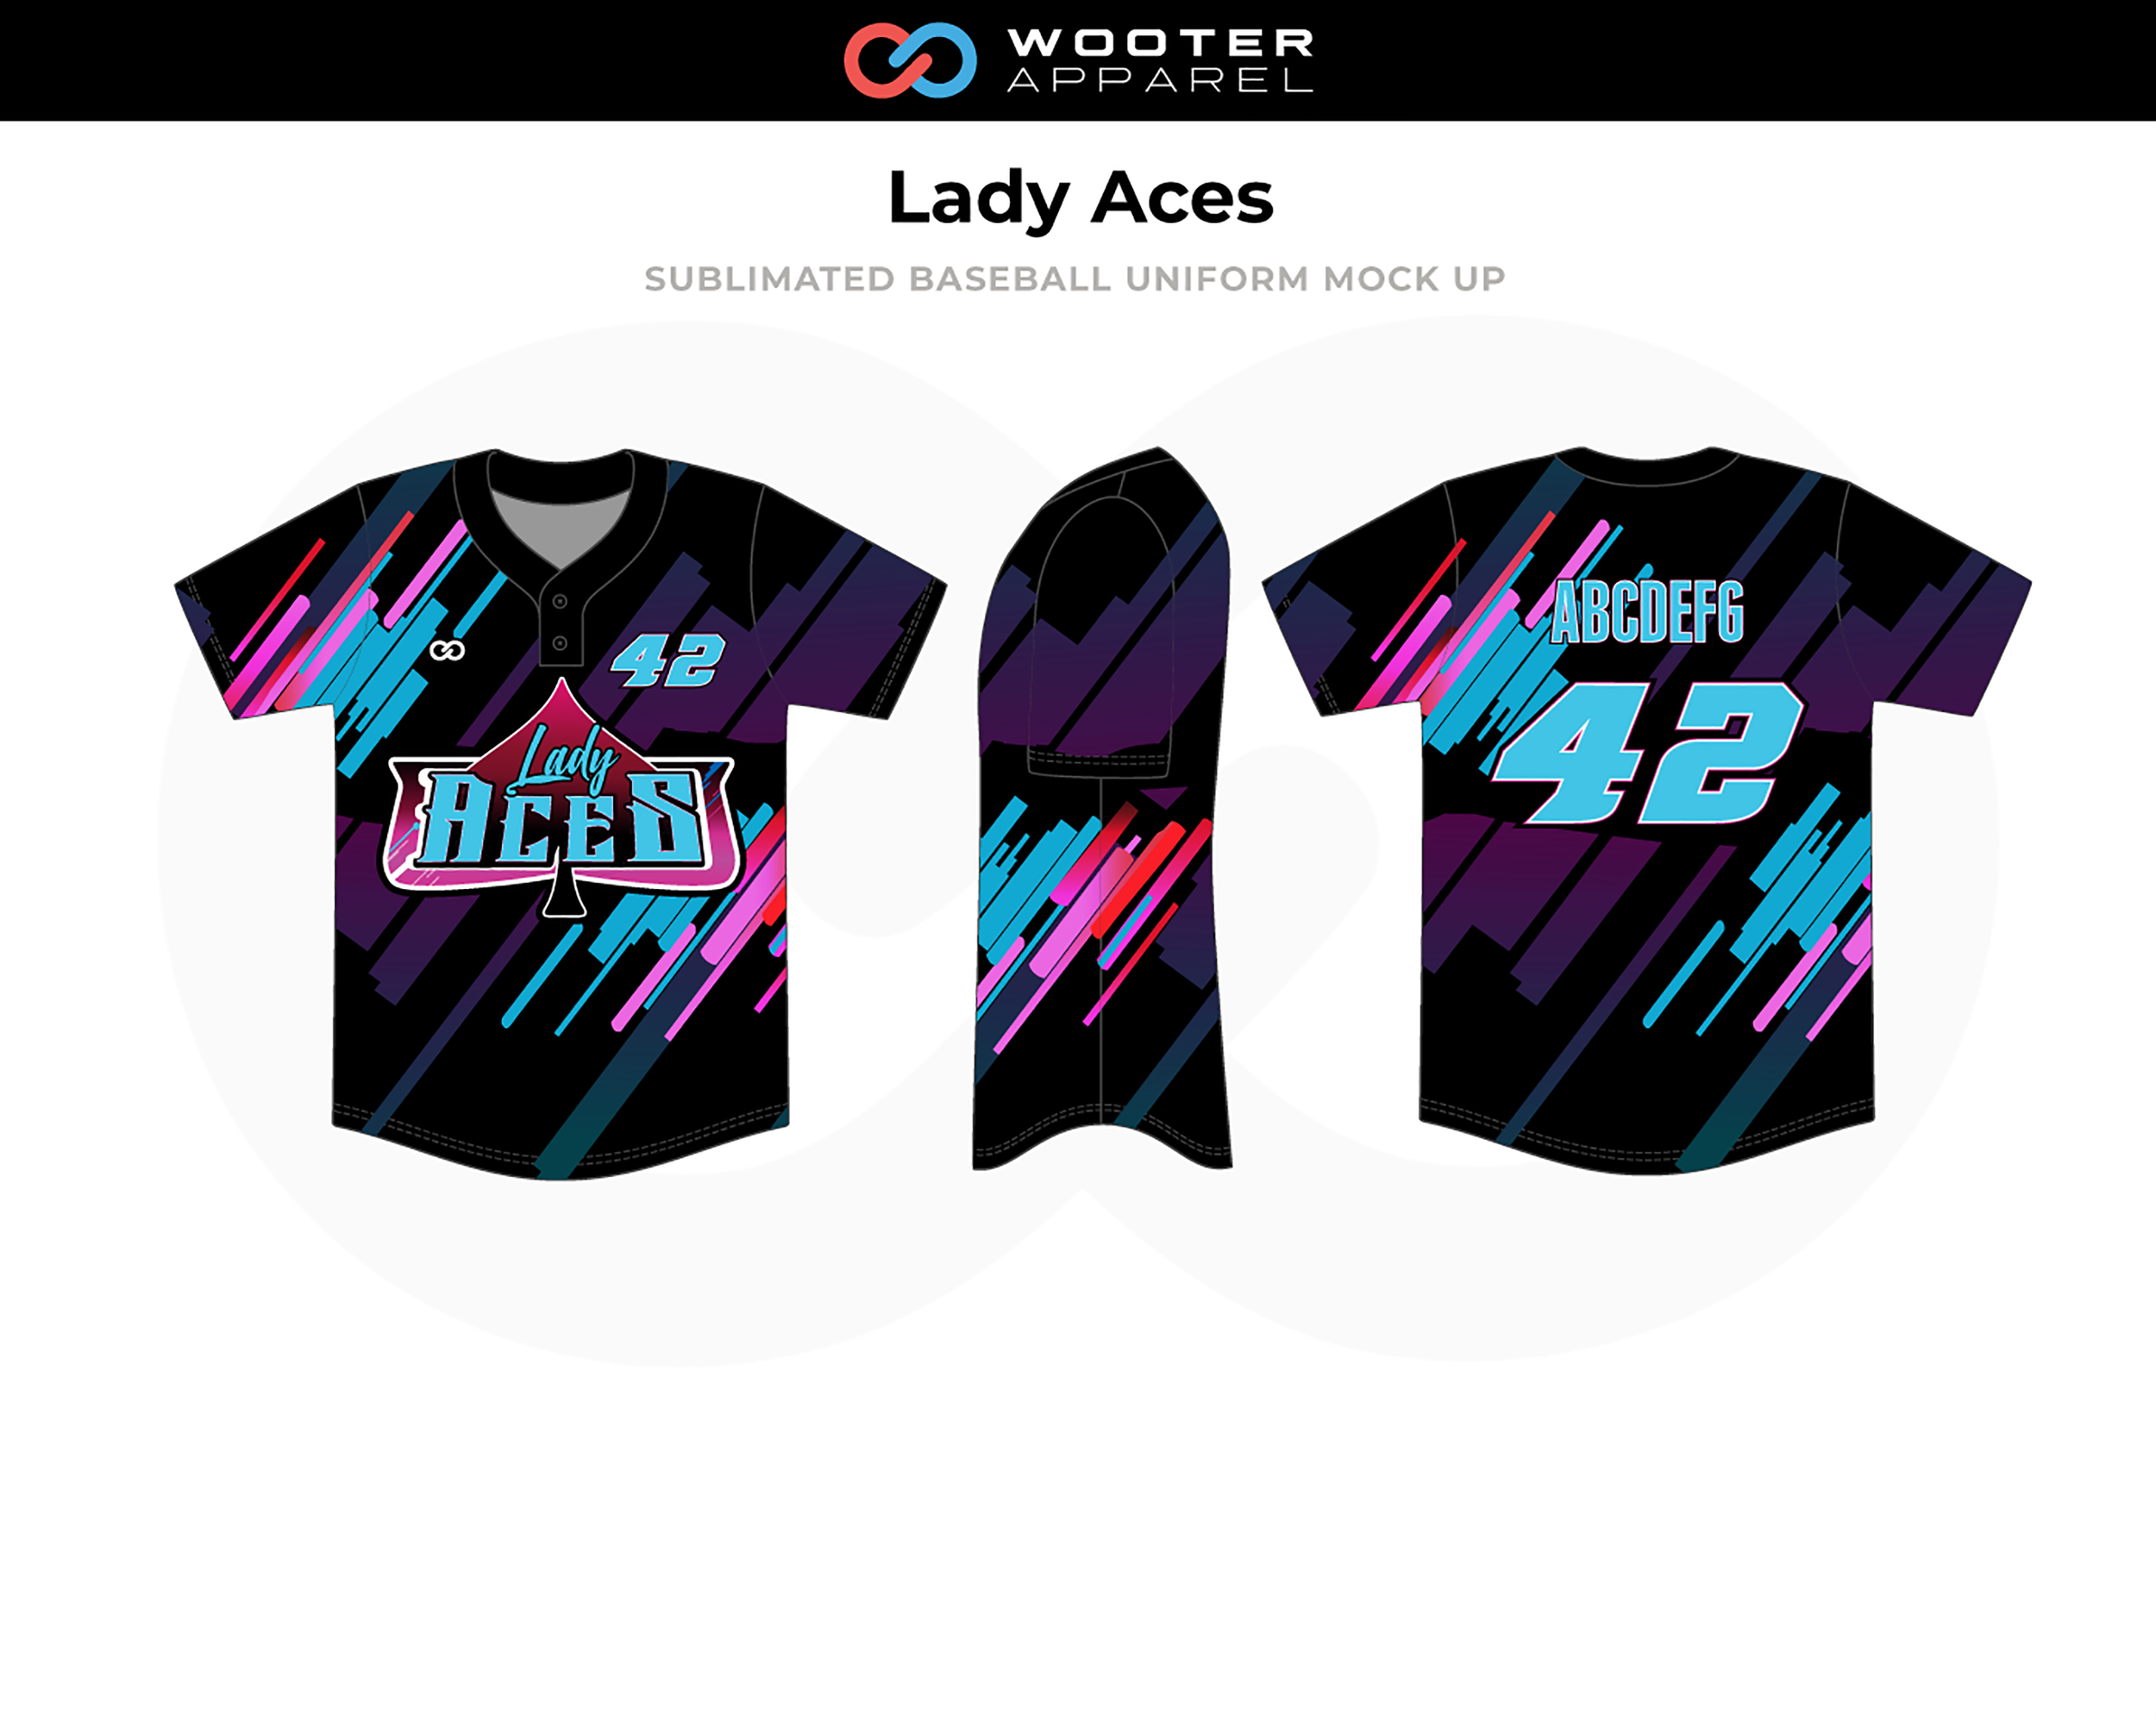 Lady-Aces_Sublimated_Baseball_2-button-Uniform_2019.png